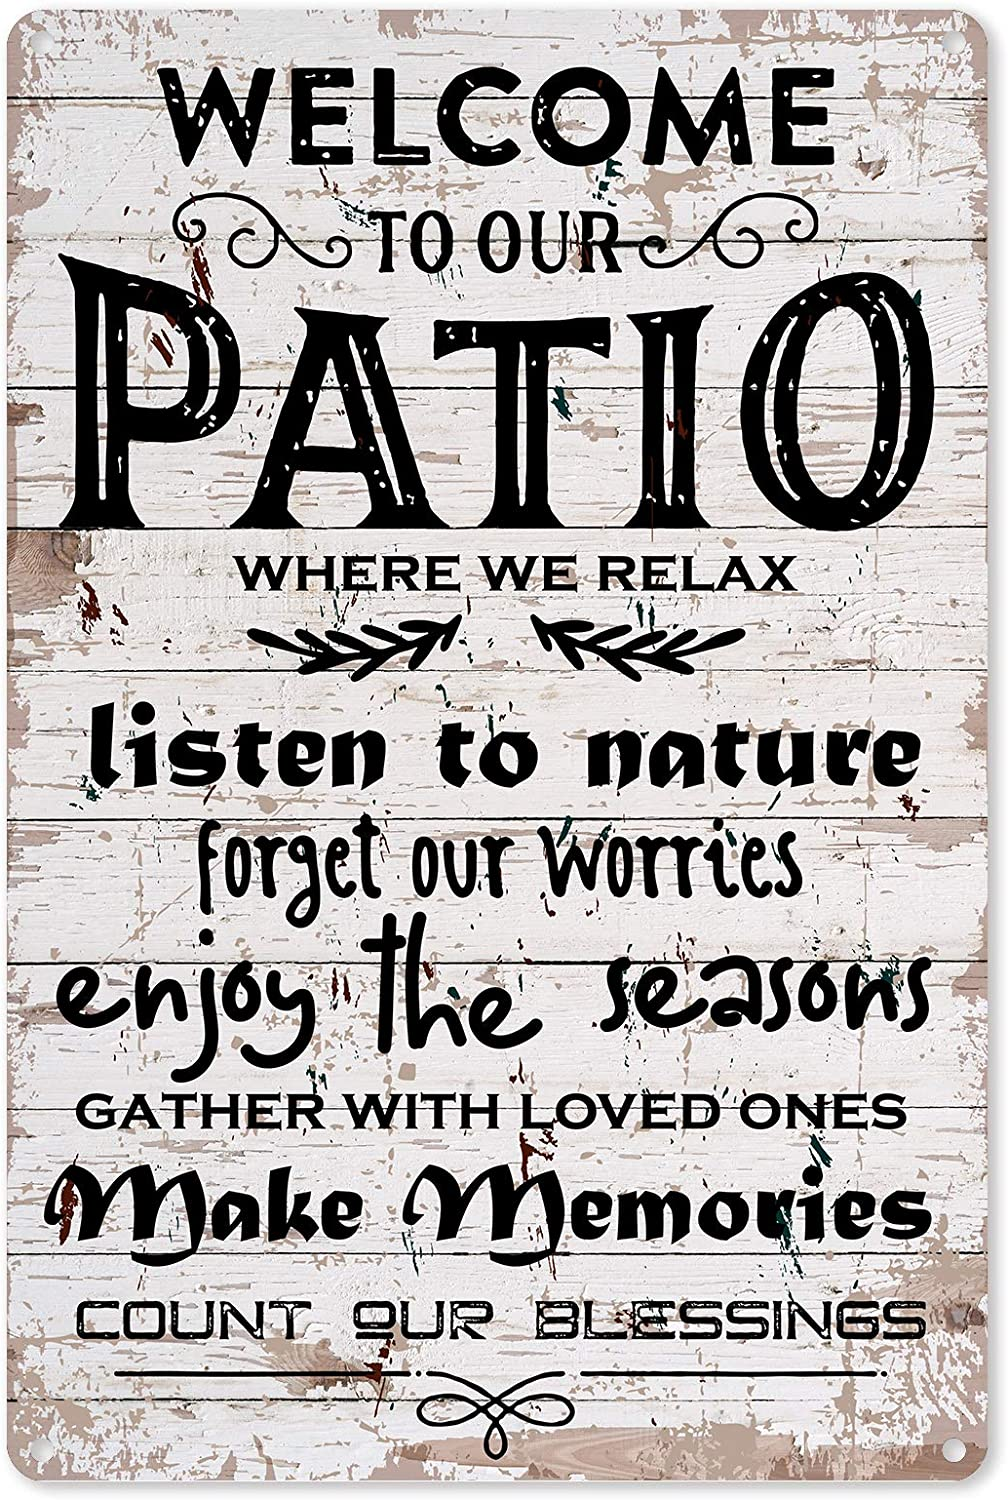 Funny Patio Metal Tin Sign Wall Decor- Vintage Welcome To Our PatioMetal Tin Signfor Home Wall Decor Gifts - Retro FarmhouseSigns Outdoor Decor Gift for Women Men Friends - 8x12 Inch